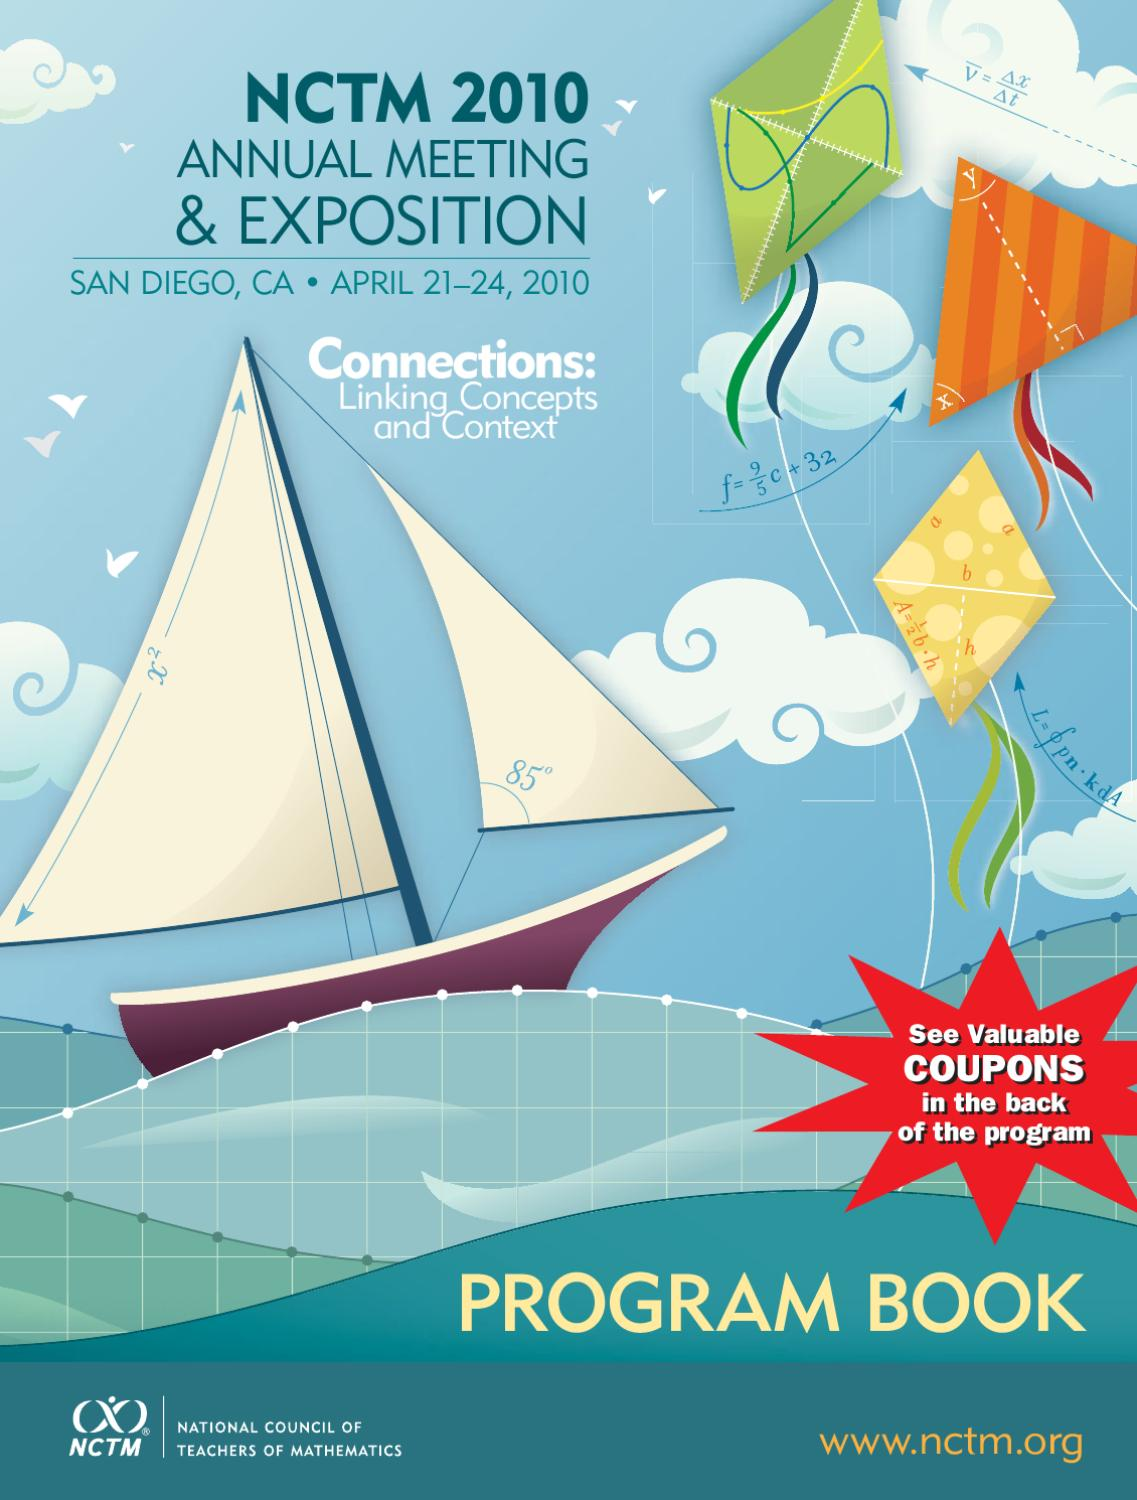 NCTM Conference Book by Cal Armstrong - issuu